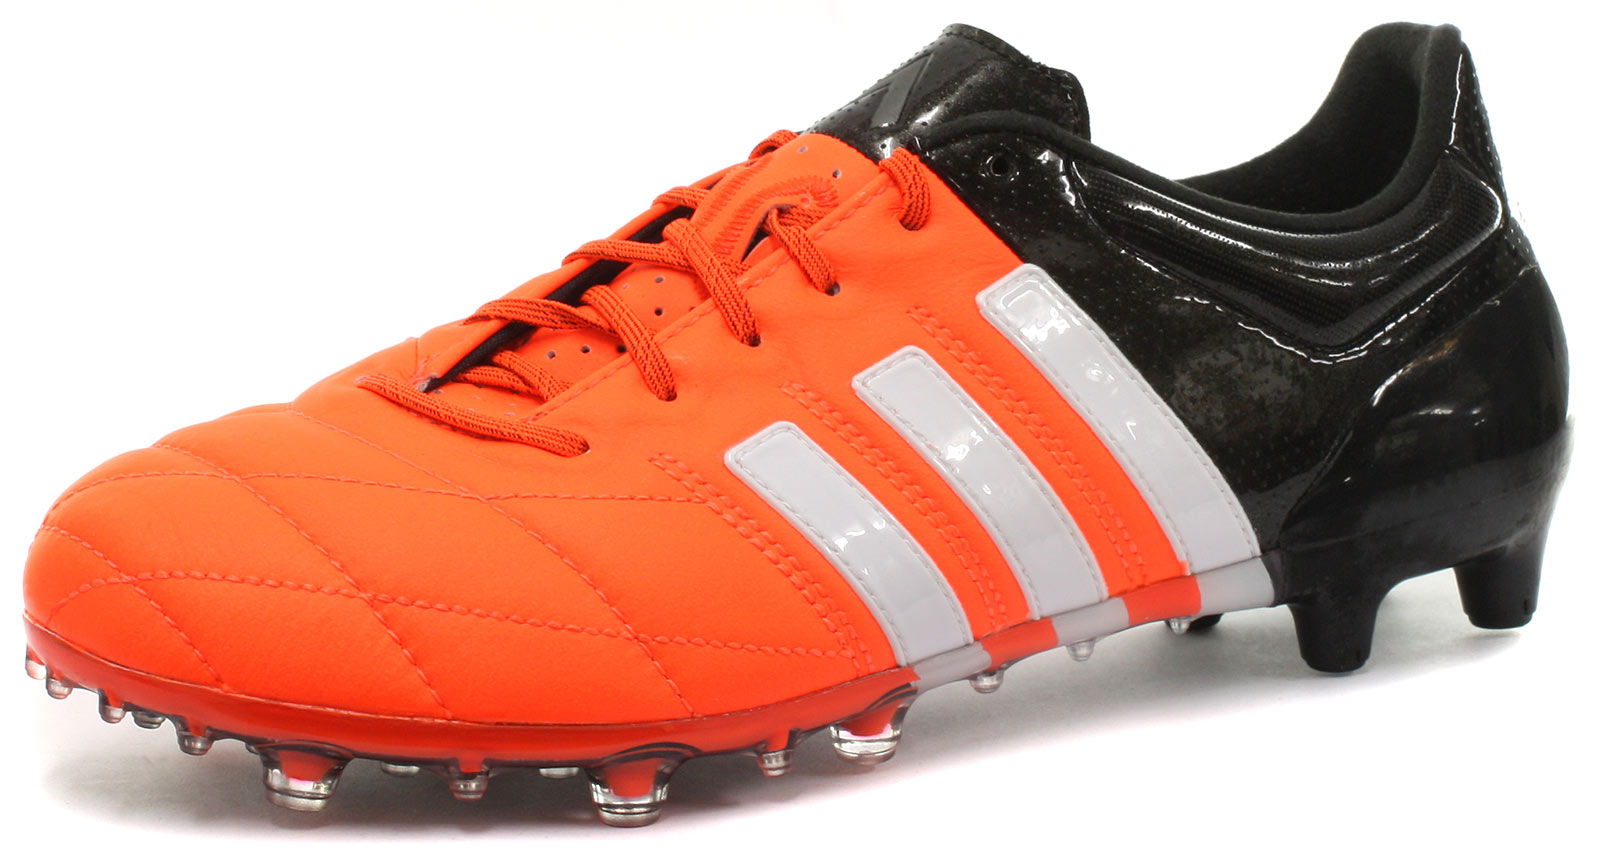 20b53e36d NEW ADIDAS ACE 15.1 FG/AG Leather Mens Football Boots ALL SIZES ...